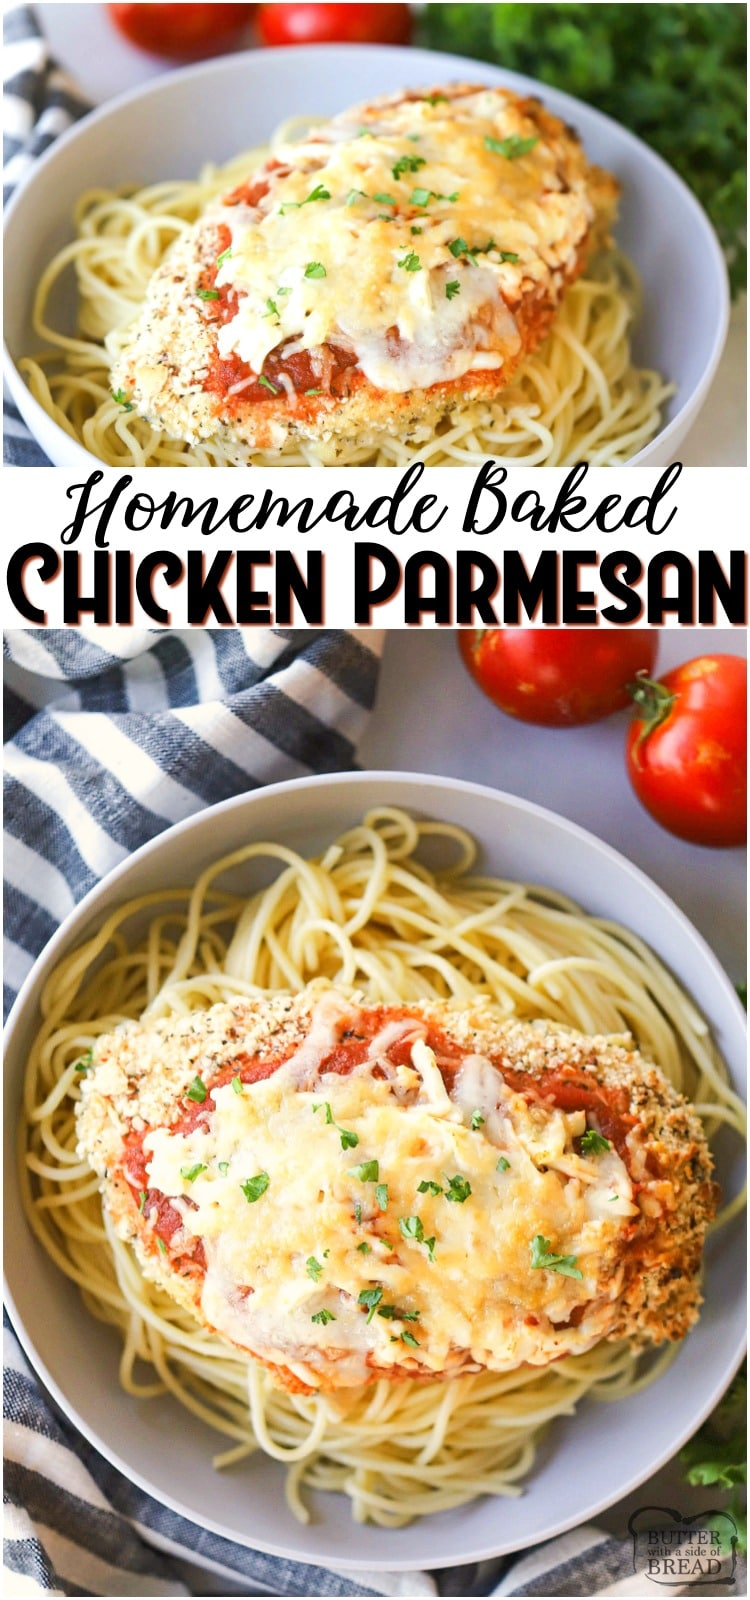 Baked Chicken Parmesan recipe is a favorite for everyone in the family. Topped with parmesan cheese, this mouth watering easy chicken parmesanis a great dinner for any day of the week and any season of the year! #dinner #chickenparm #bakedchicken #chicken #easydinner #recipe from BUTTER WITH A SIDE OF BREAD